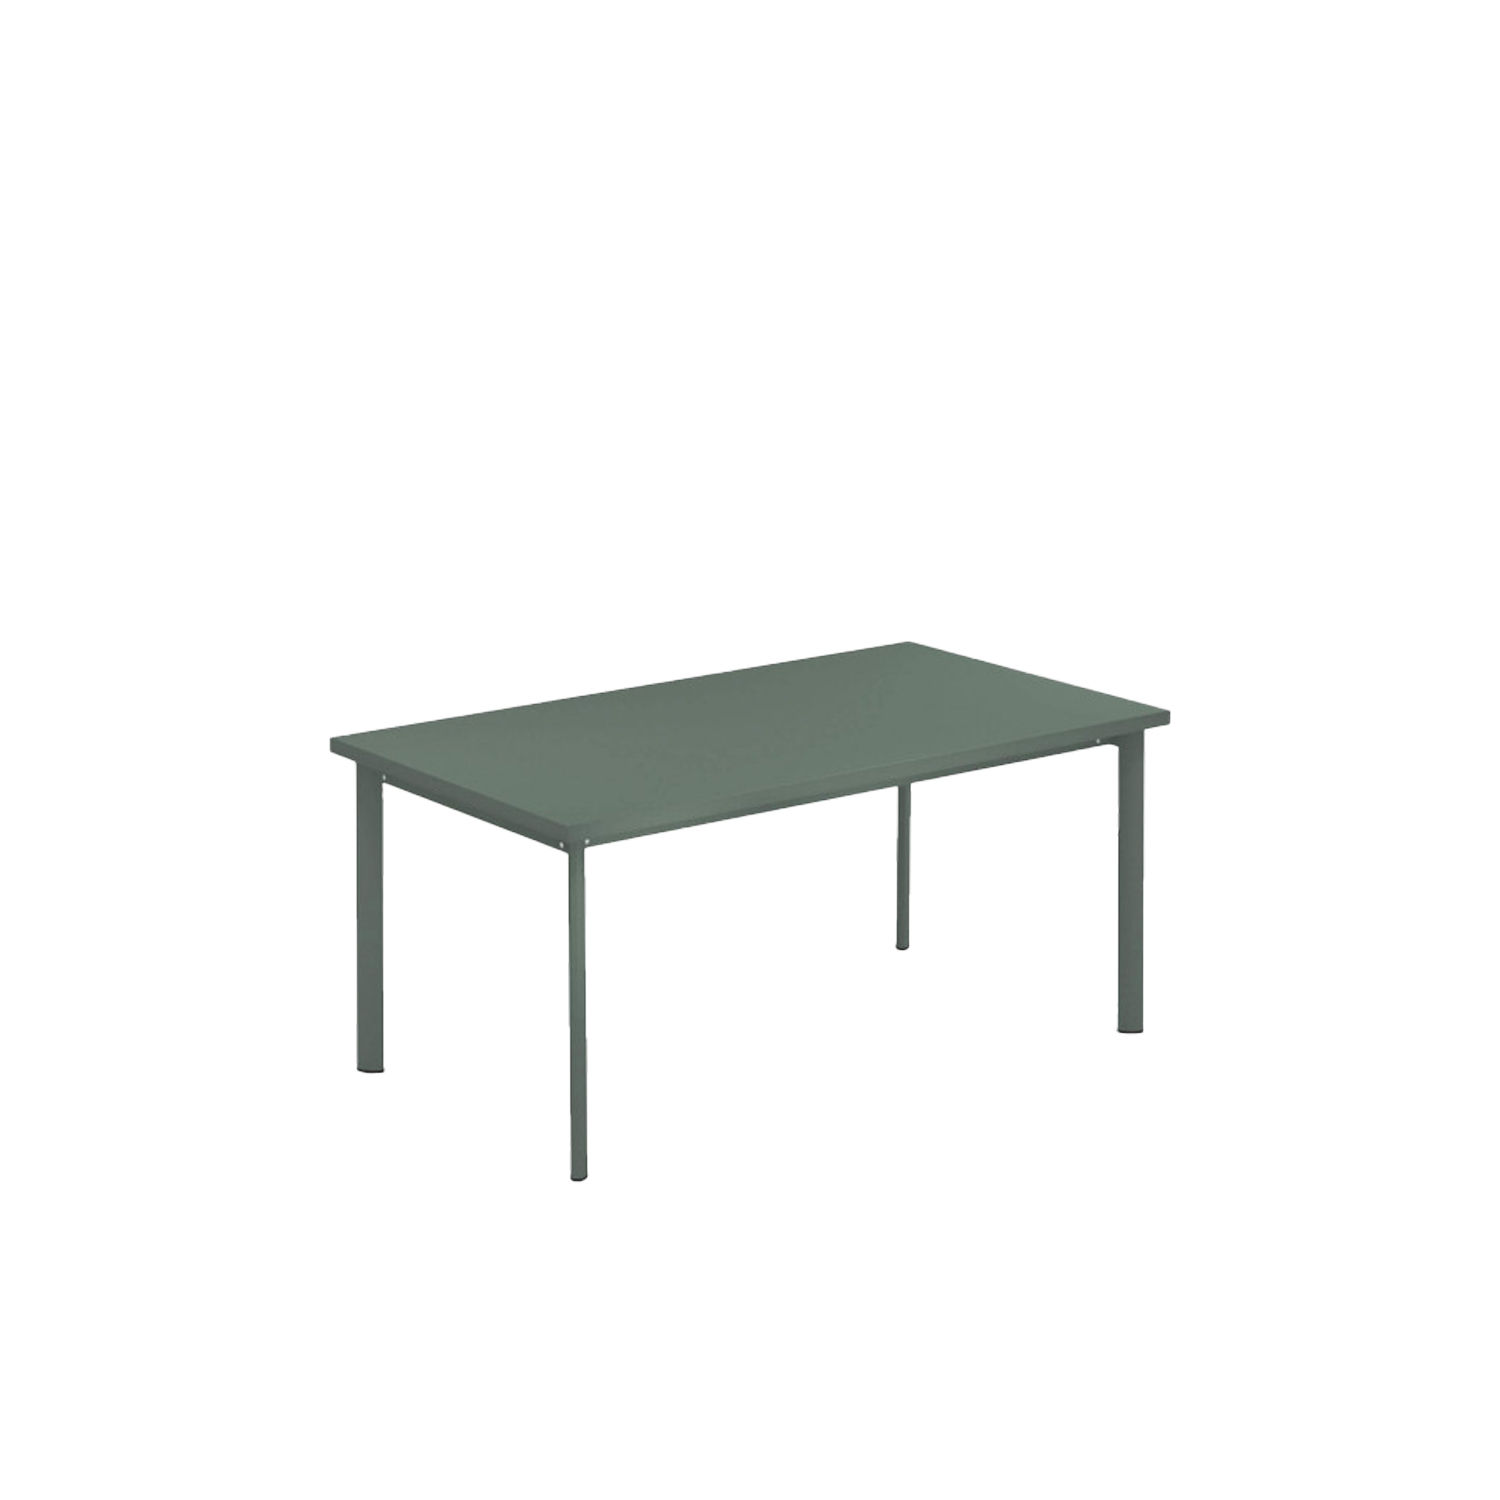 Star Rectangular Table - This is a rectangular table made from steel. This table comes in a wide array of colours so that you can choose the best colour to suit your space.   A series of chairs and tables, the Star collection is an evergreen among EMU products. Simple shapes, colour and versatility mark this collection which is defined by soft, classic lines, ideal in multiple contexts and surroundings. The Star collection comprises chair, armchair, stool, lounge chair, sofa and tables of various sizes.  | Matter of Stuff